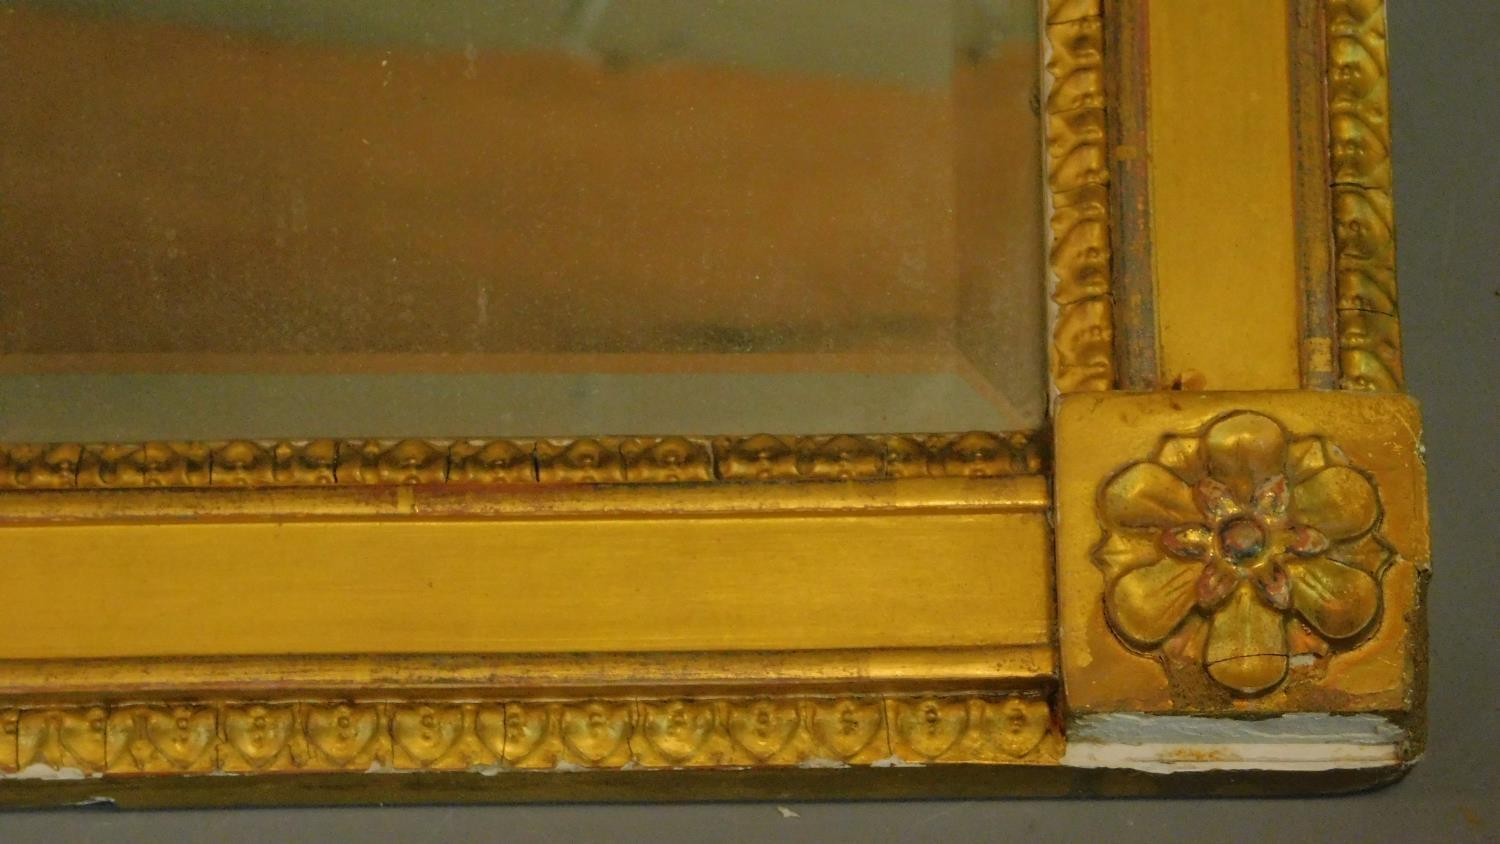 A 19th century gilt framed triple section overmantel mirror. 112x53cm - Image 2 of 3